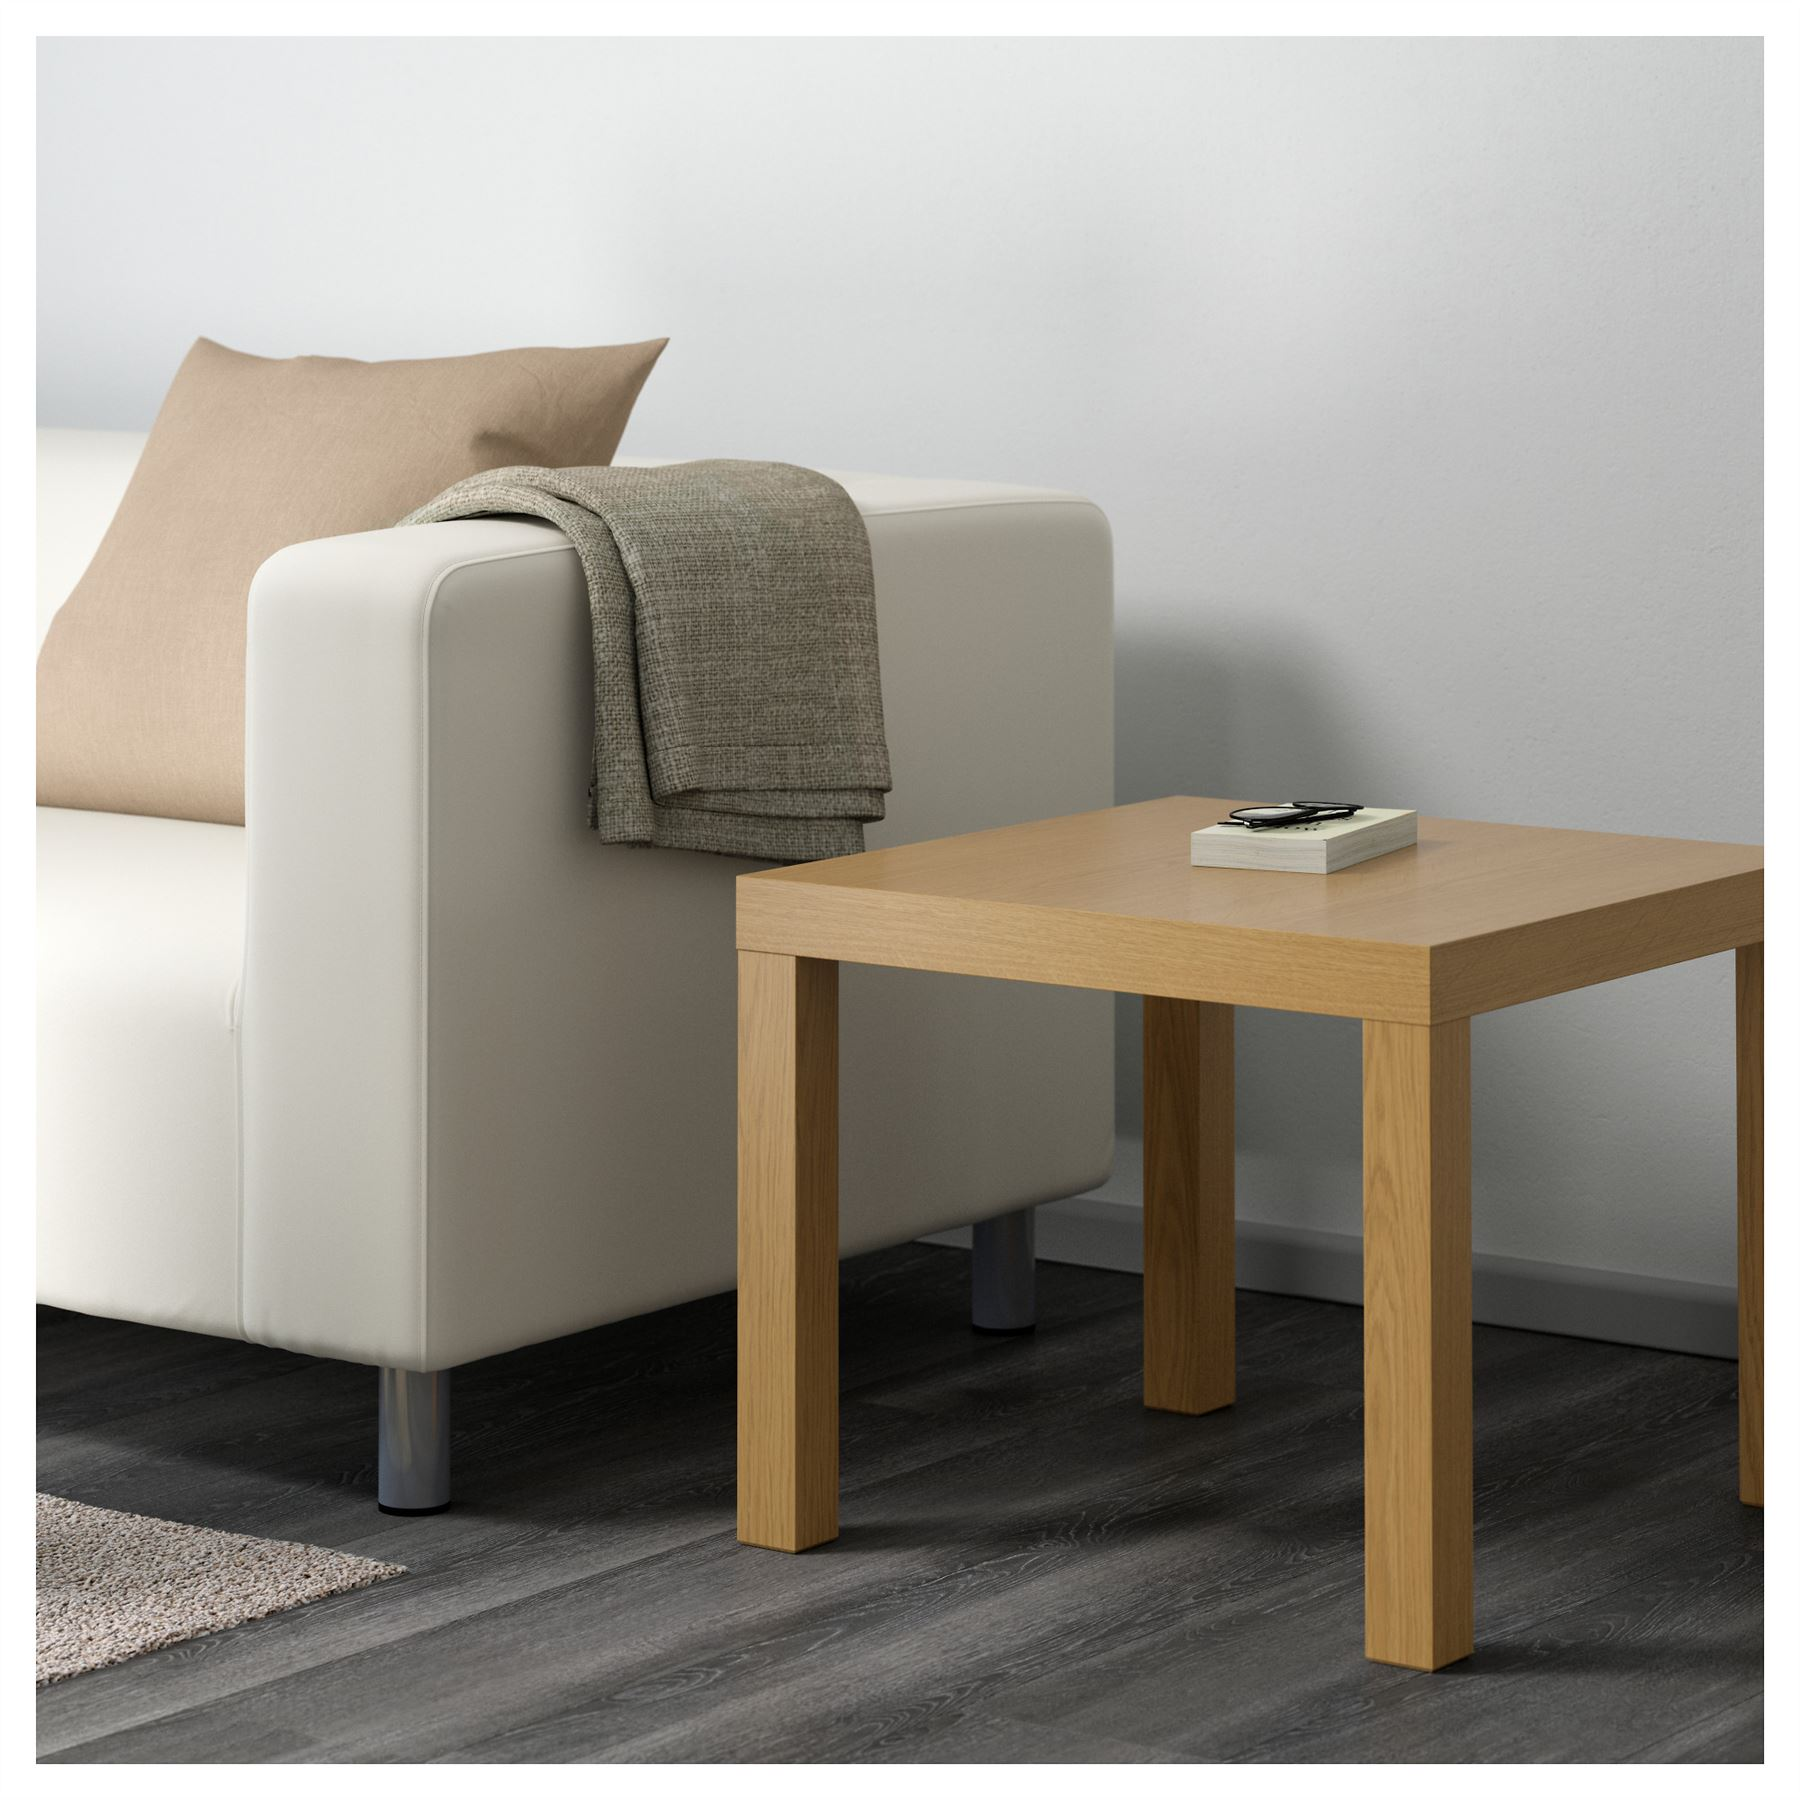 Bedroom Coffee Table: Ikea Lack Side Table End Display 55cm Square Small Coffee